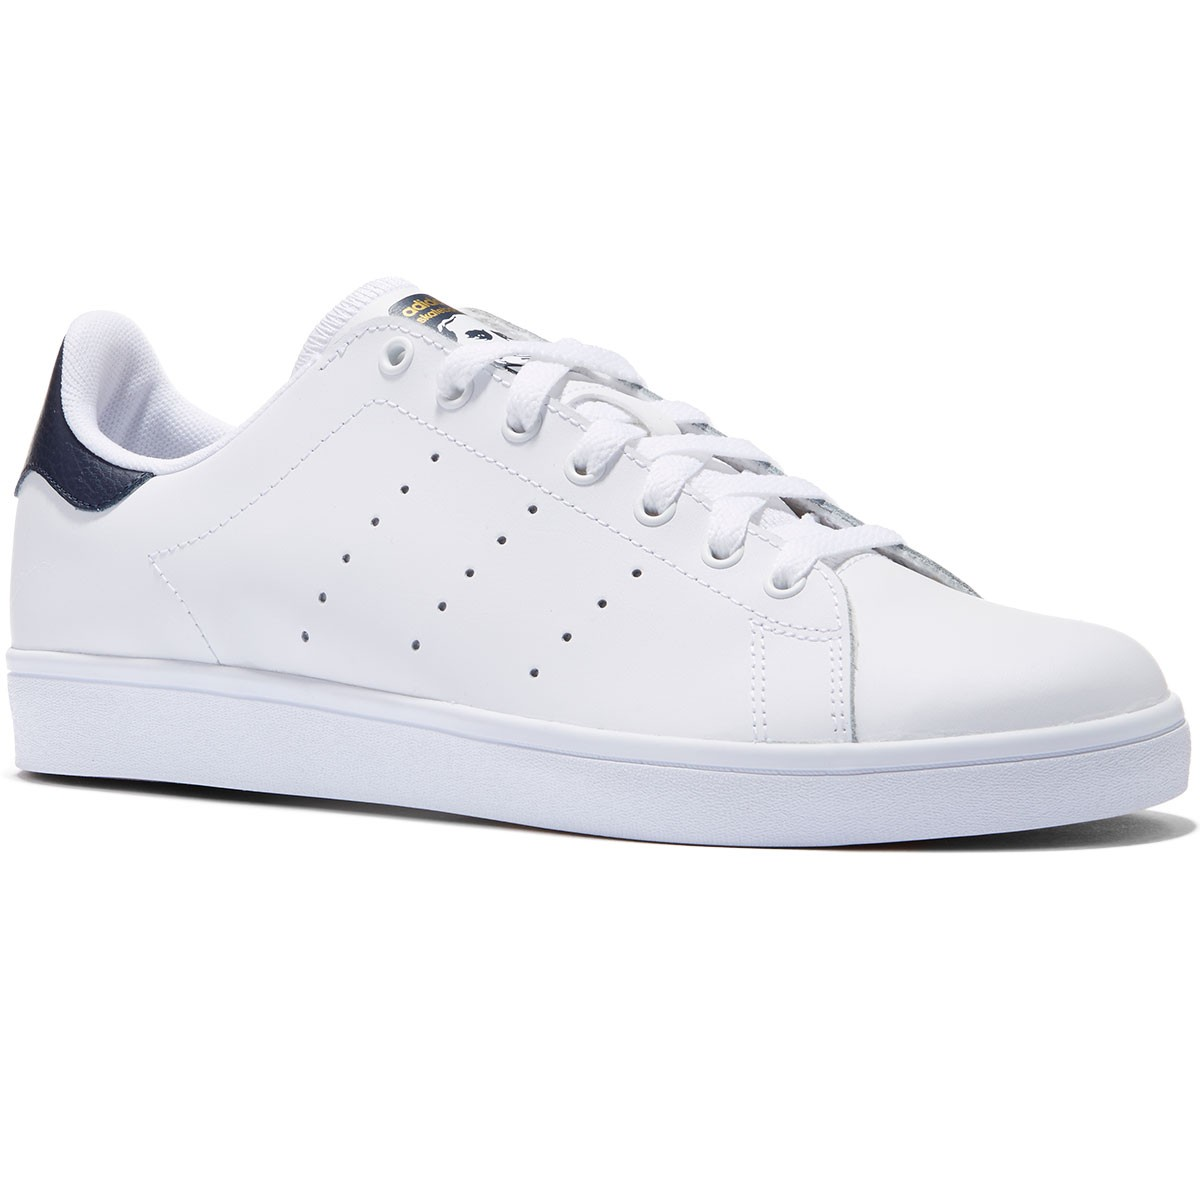 adidas stan smith vulc shoes. Black Bedroom Furniture Sets. Home Design Ideas